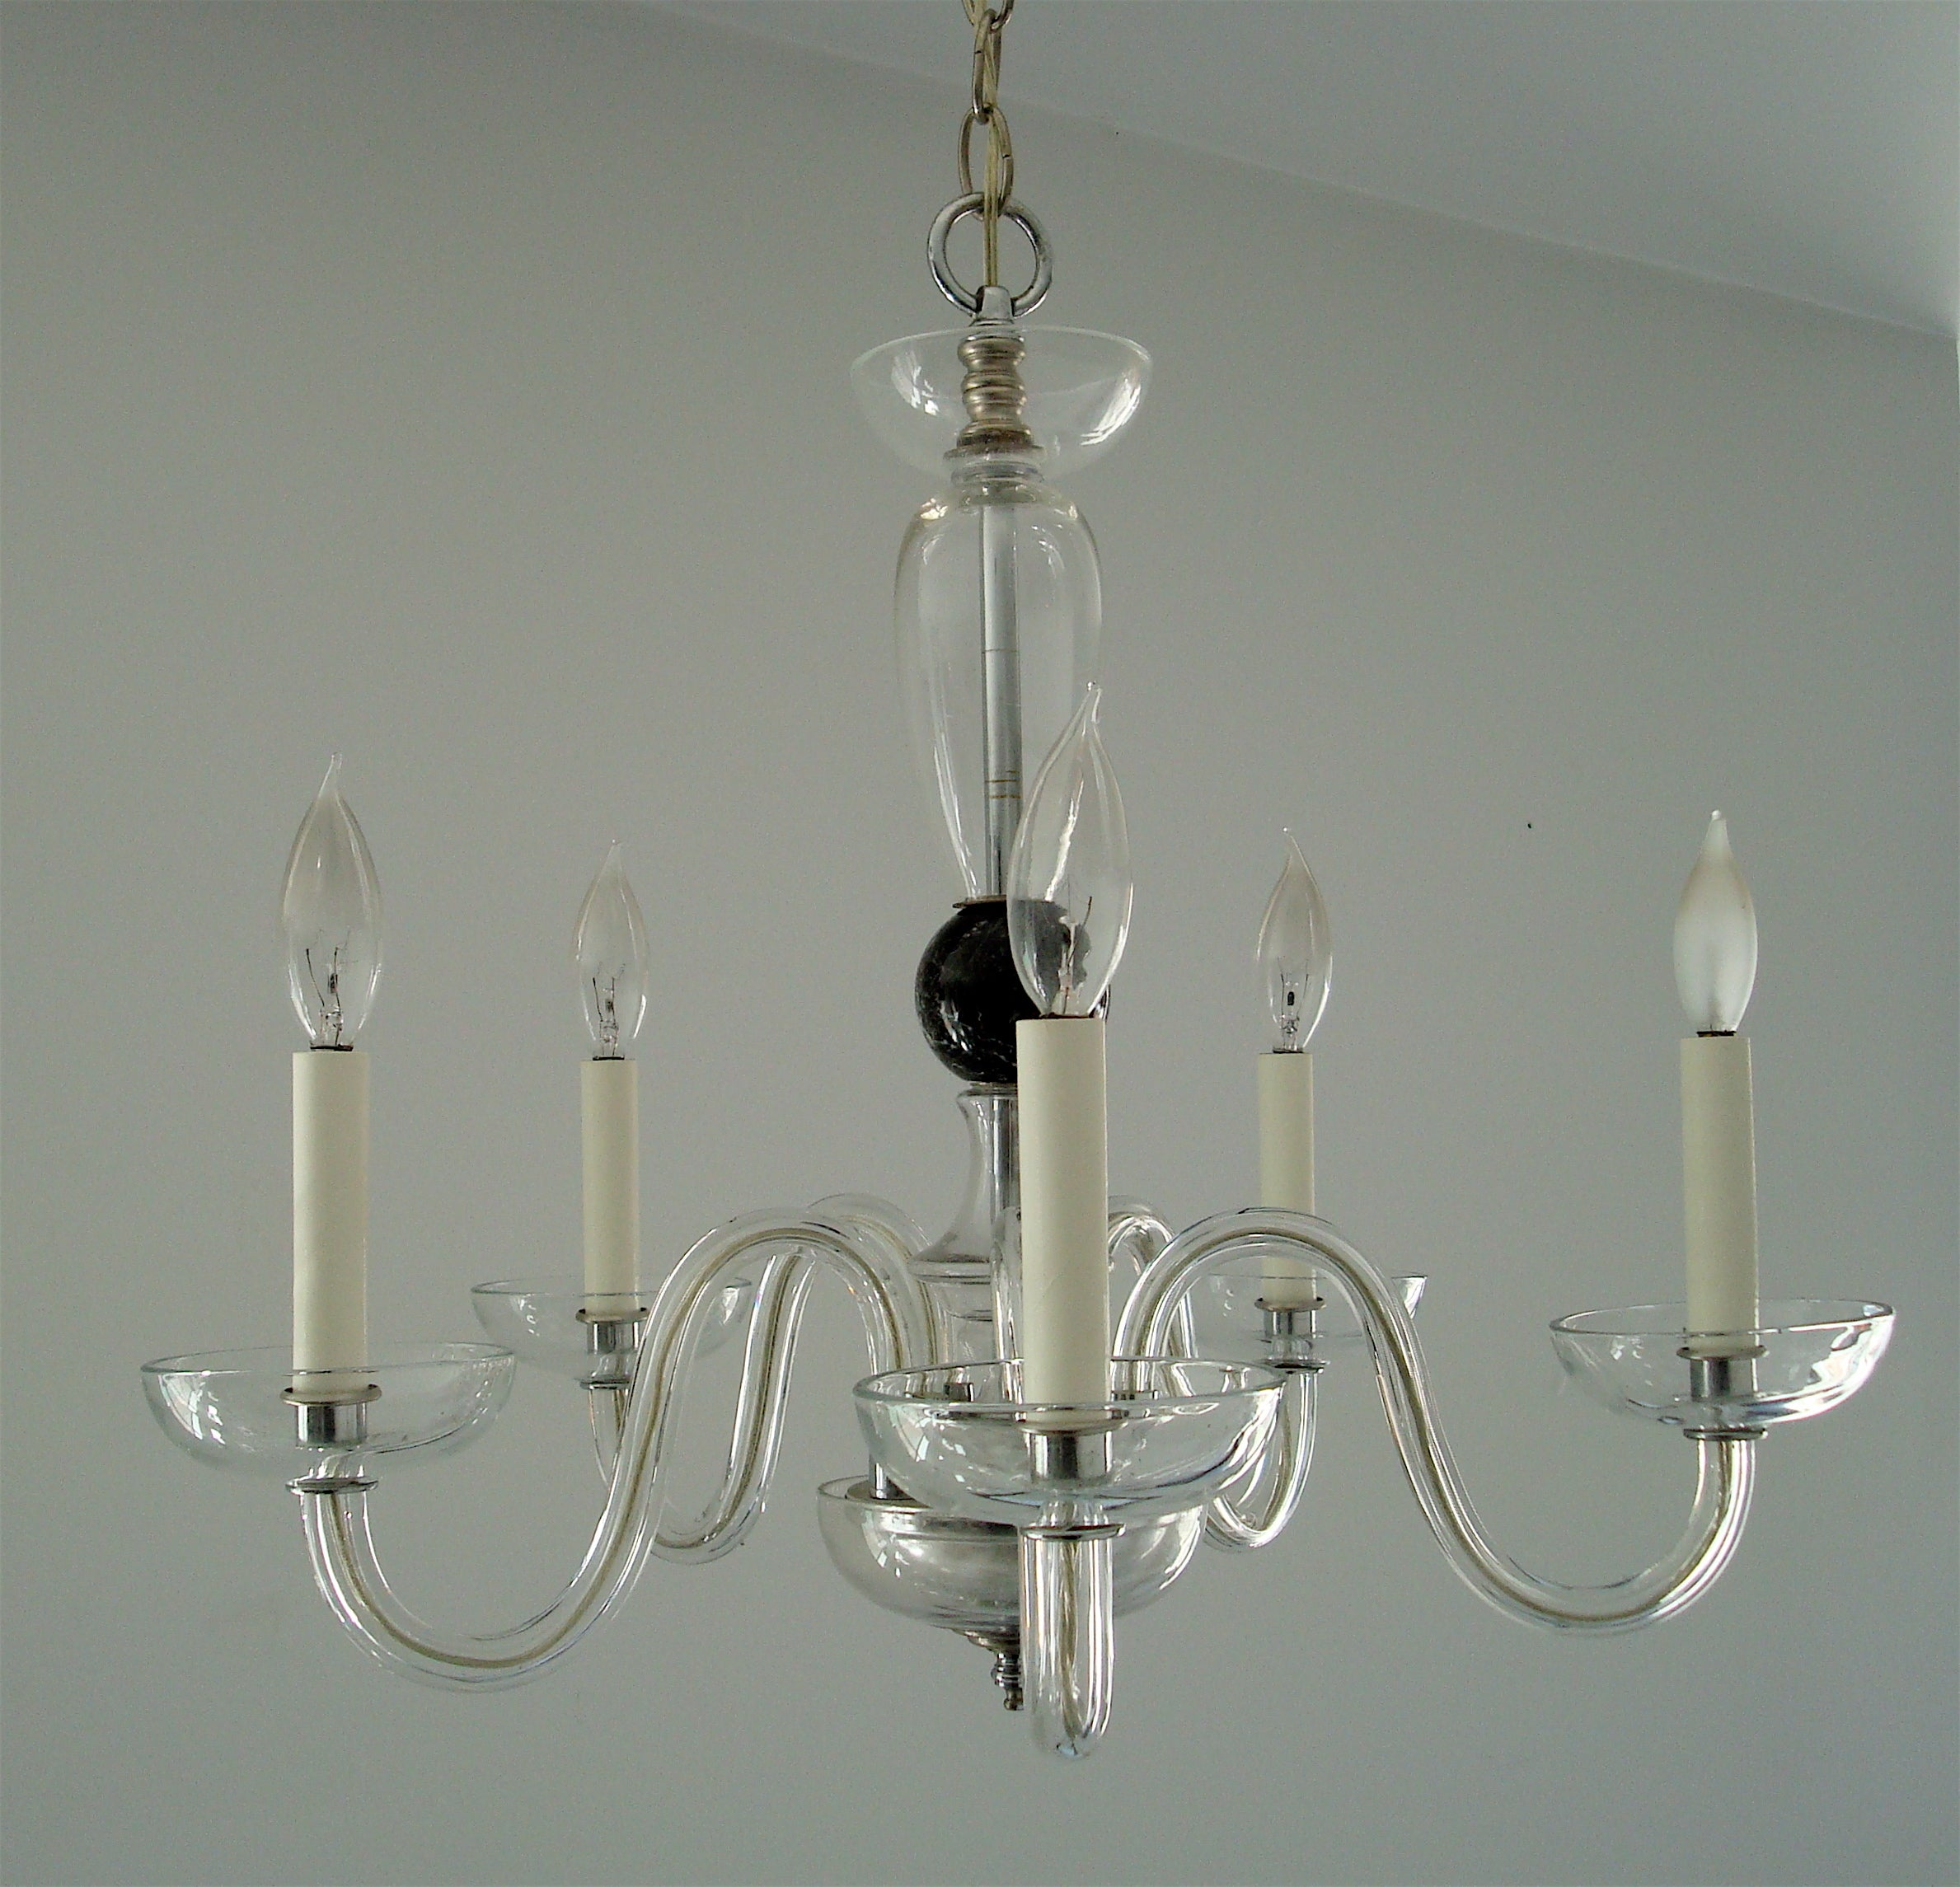 on co vintage fixtures milk tulum home chandelier ceiling with ideas glass light perfect smsender design